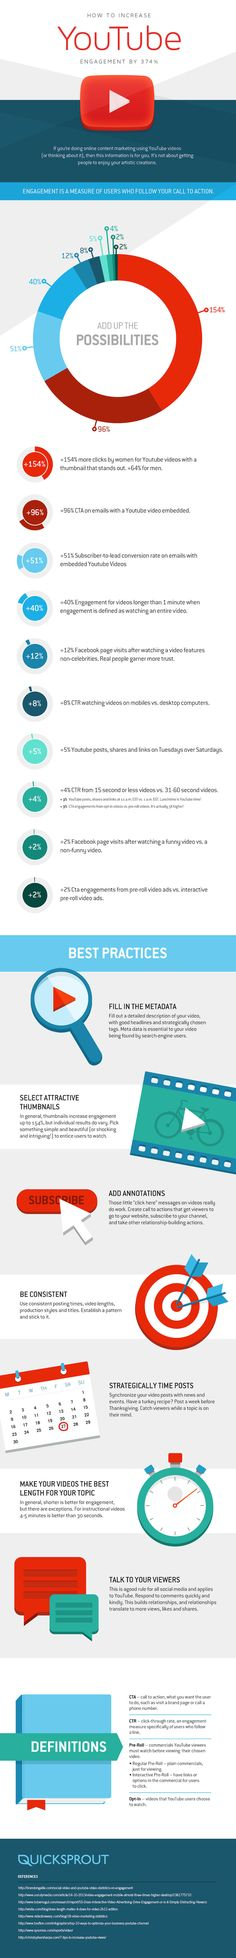 How To Increase Engagement on YouTube - infographic